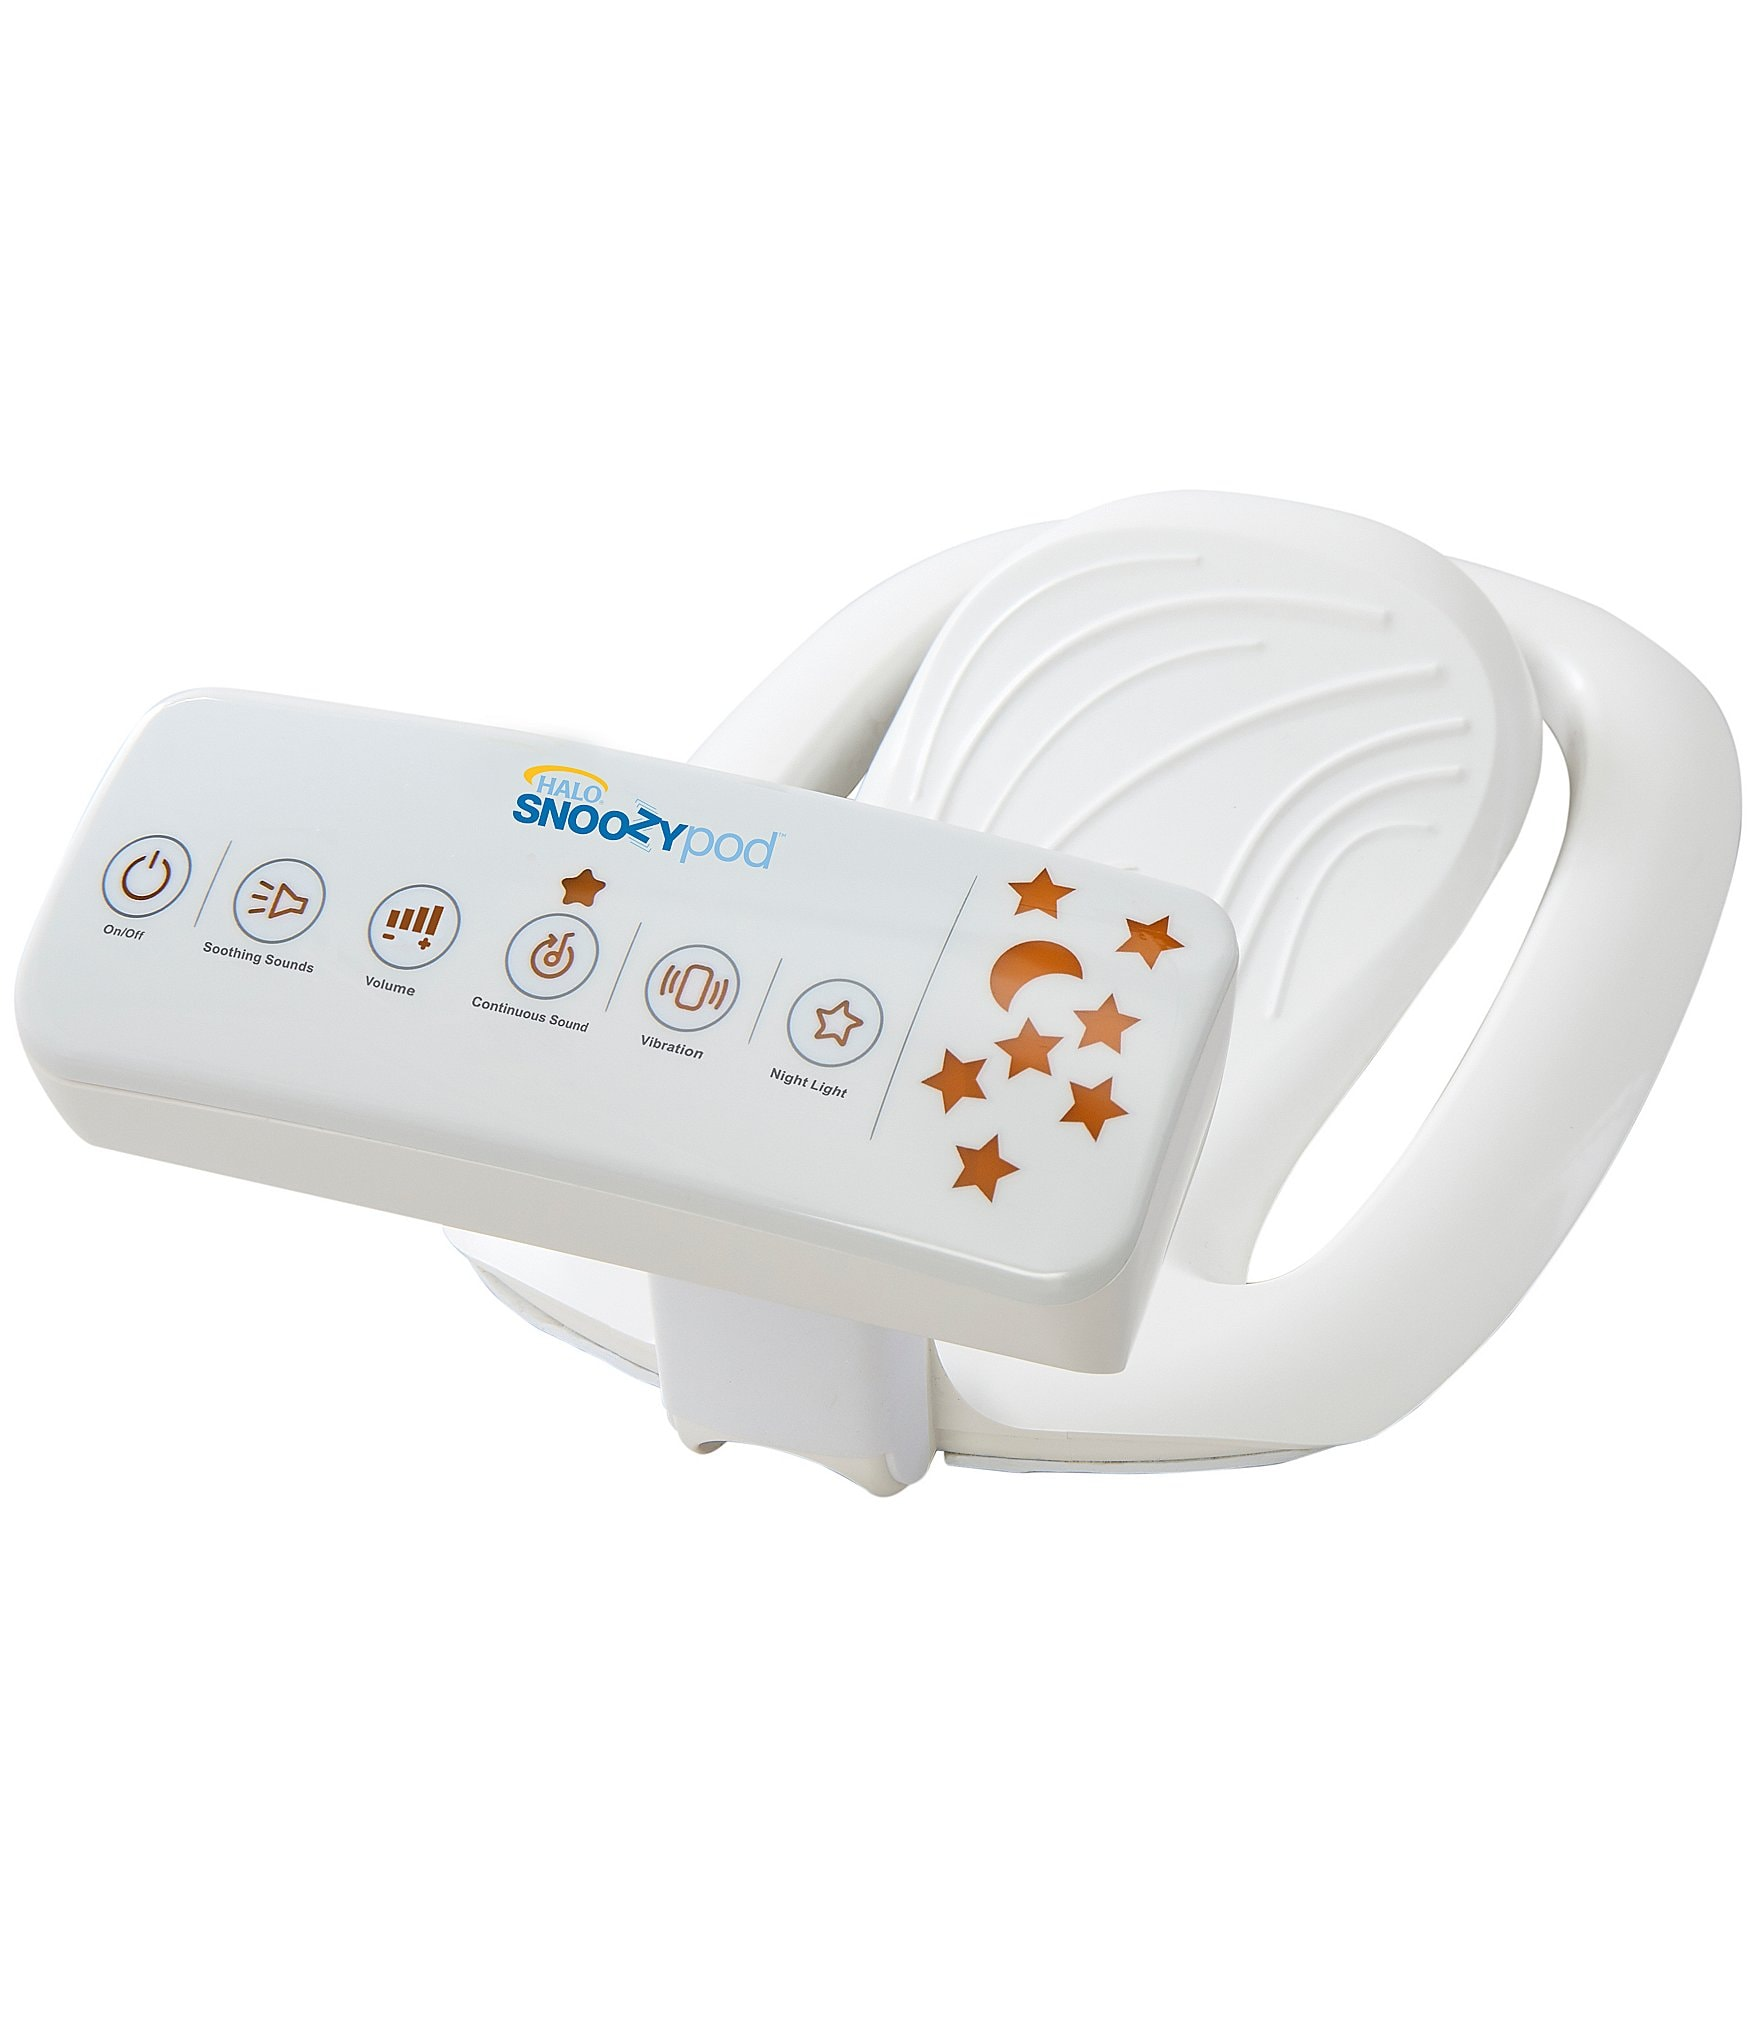 HALO® Baby SnoozyPod® Vibrating Bedtime Soother | Dillard's